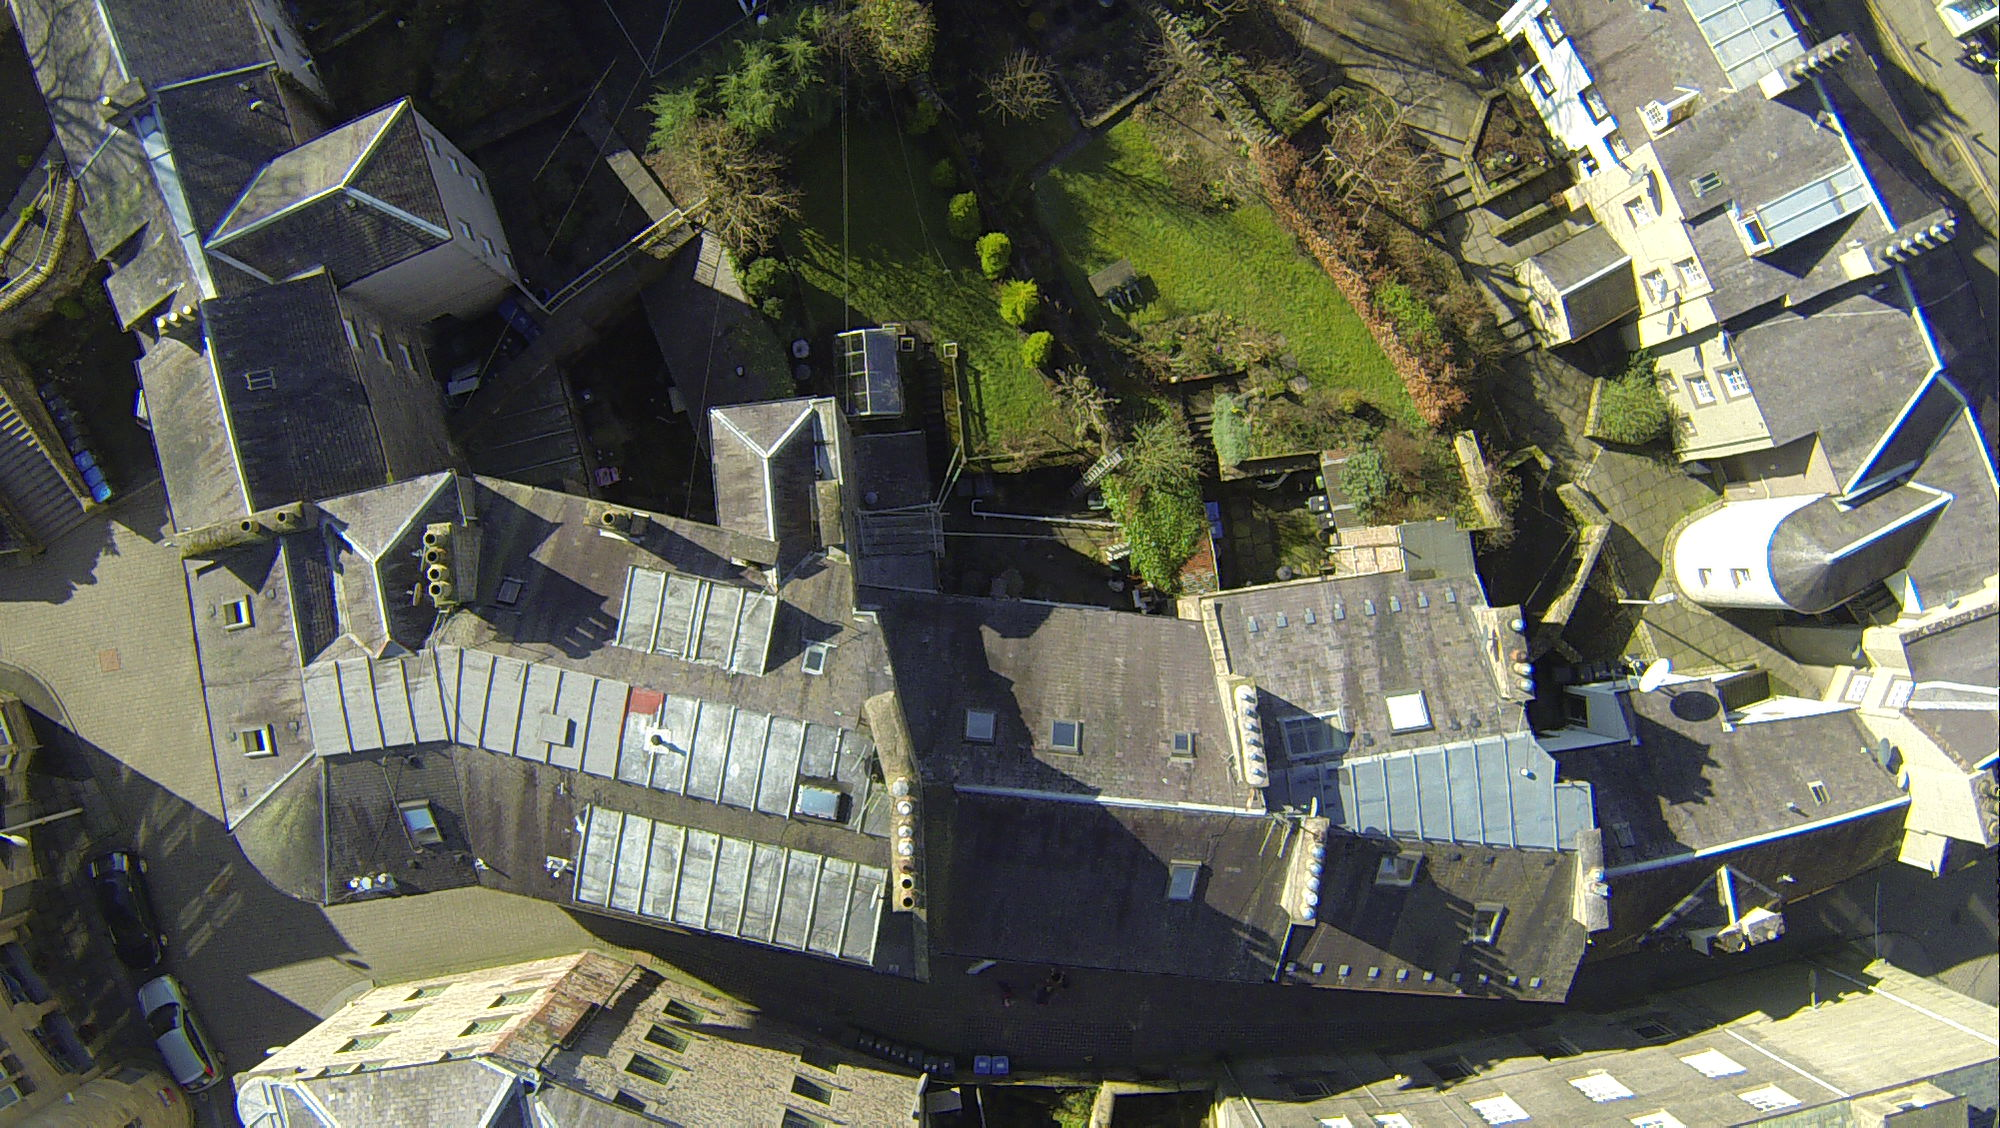 Aerial survey of rooftops - Survey Drones